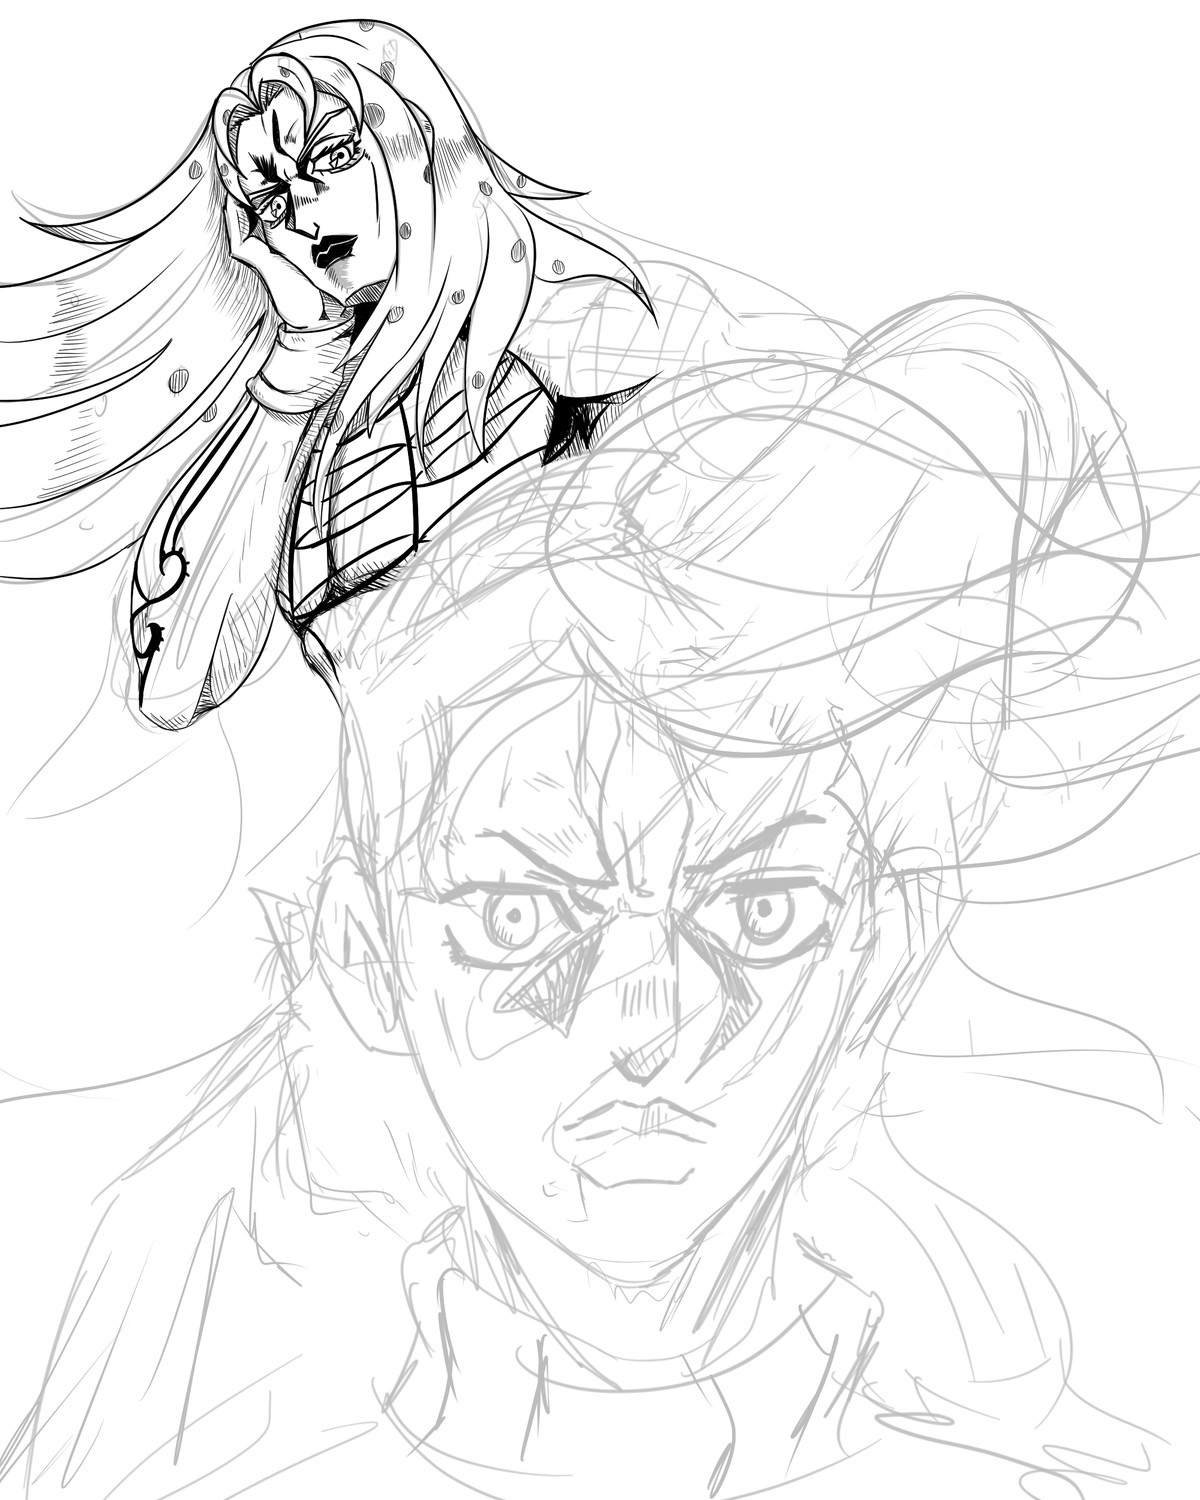 Diavolo/Doppio WIP. join list: GBArt (261 subs)Mention History.. Congratulations brother. You've got a lot of talent and I'm sure you worked hard for it. Cant wait to see the final version. Will you do colors or leave it in b